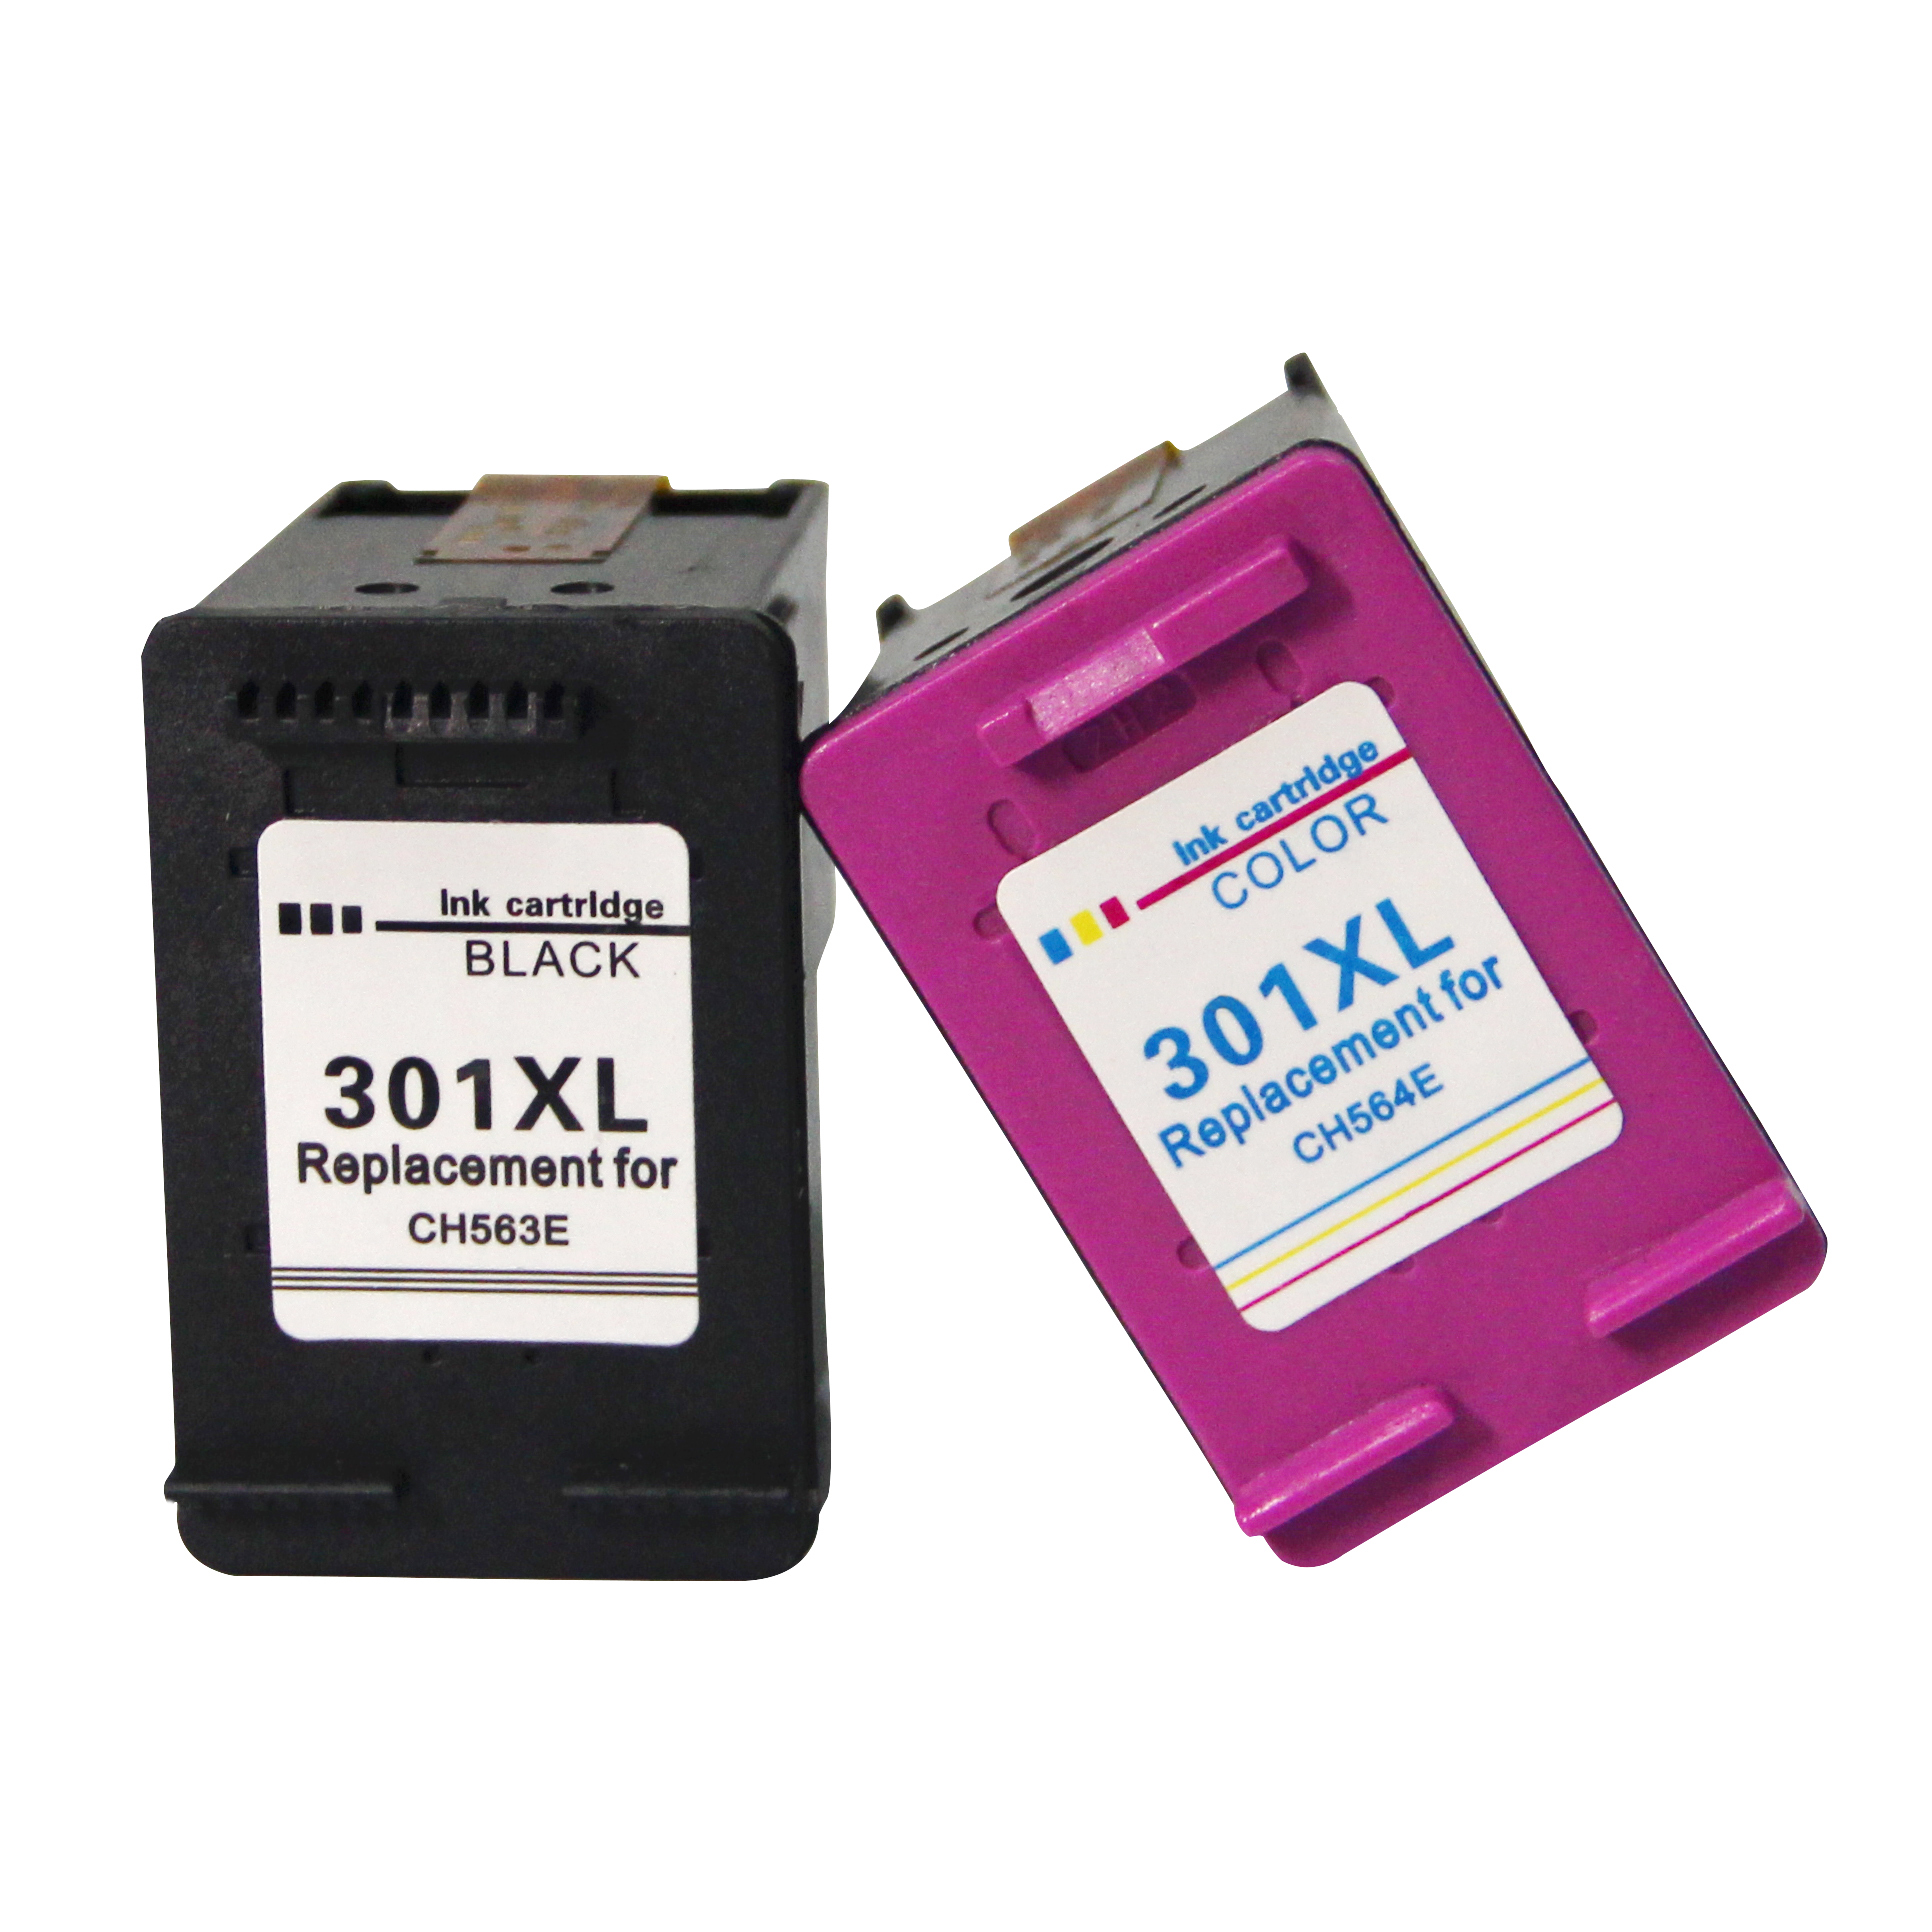 Ewigkeit Compatibel Voor Hp 301 Xl Ink Cartridge Voor Hp Deskjet 1000 1050 2000 2050 2050S 2510 3510 3050 3050a Printers